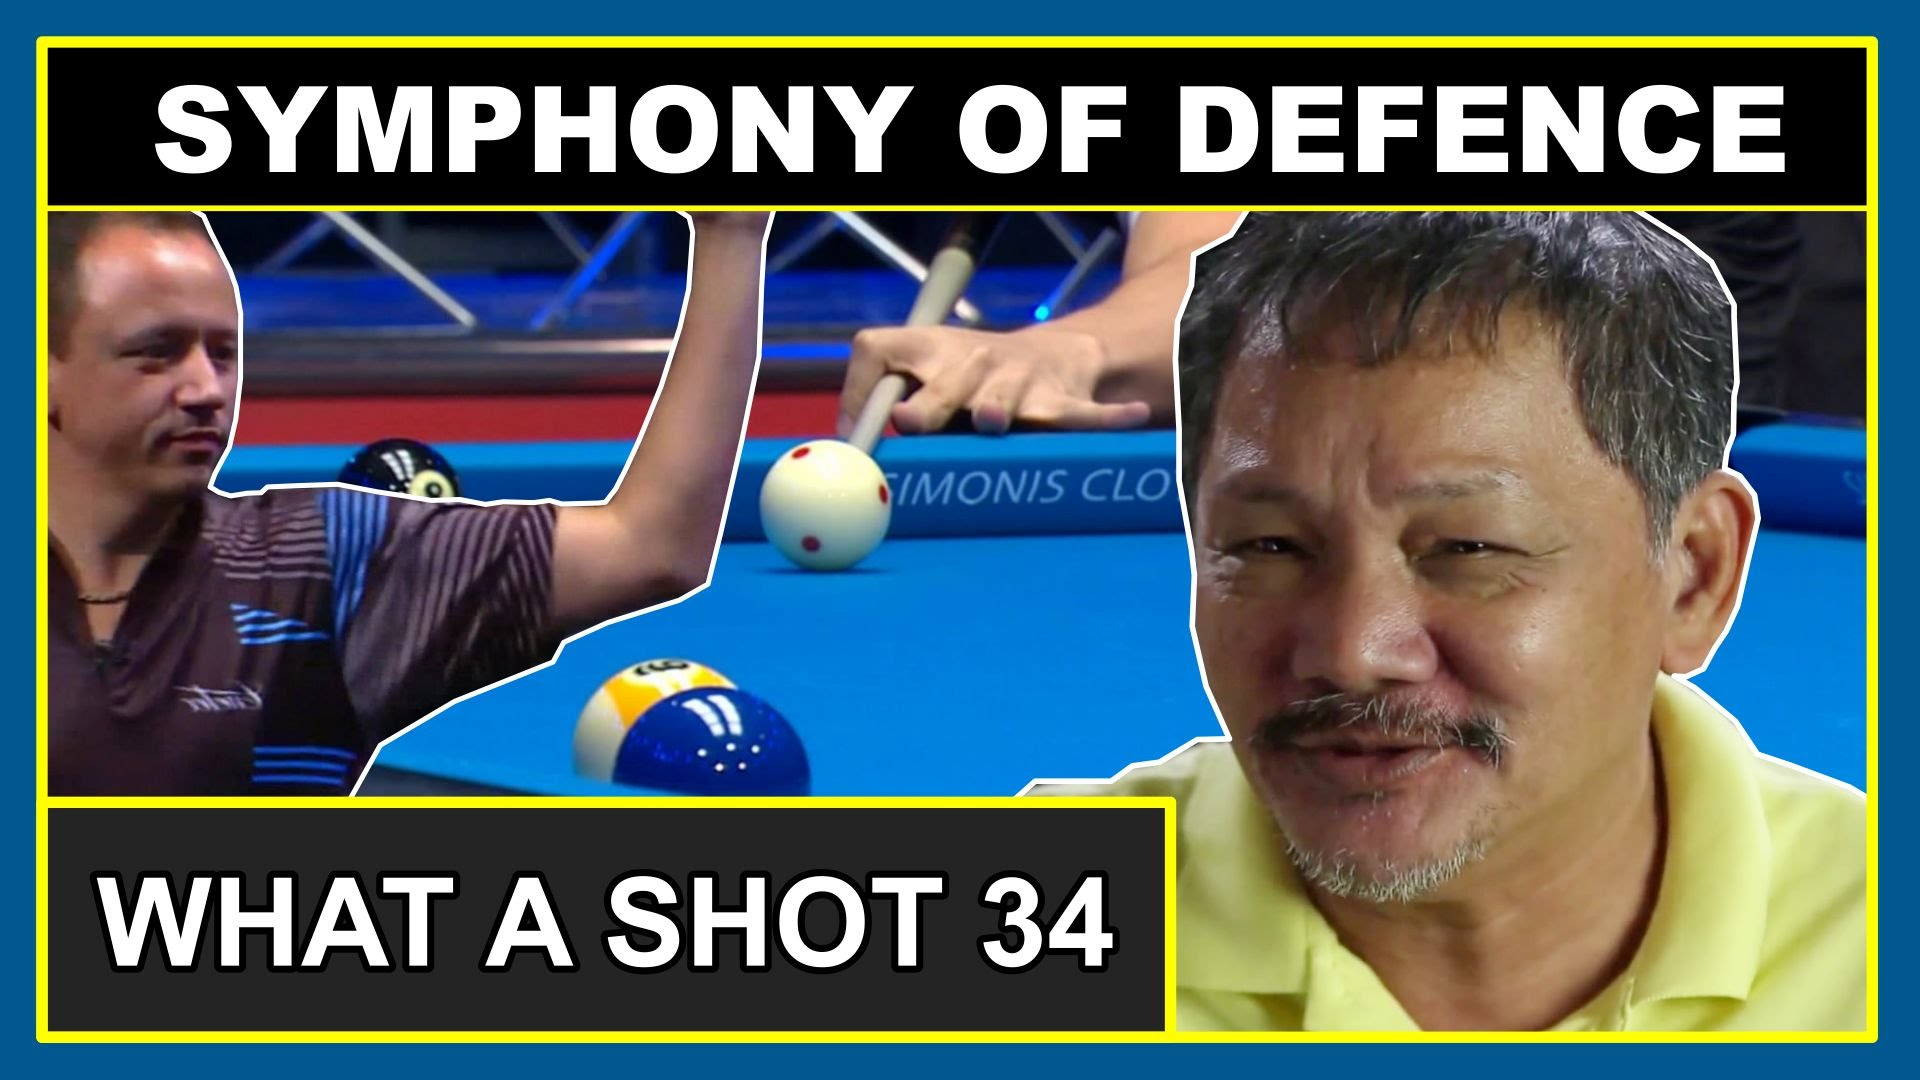 Symphony of Defence | What A Shot! 34 (Safety Pool Shots Compilation) genipool14 cut